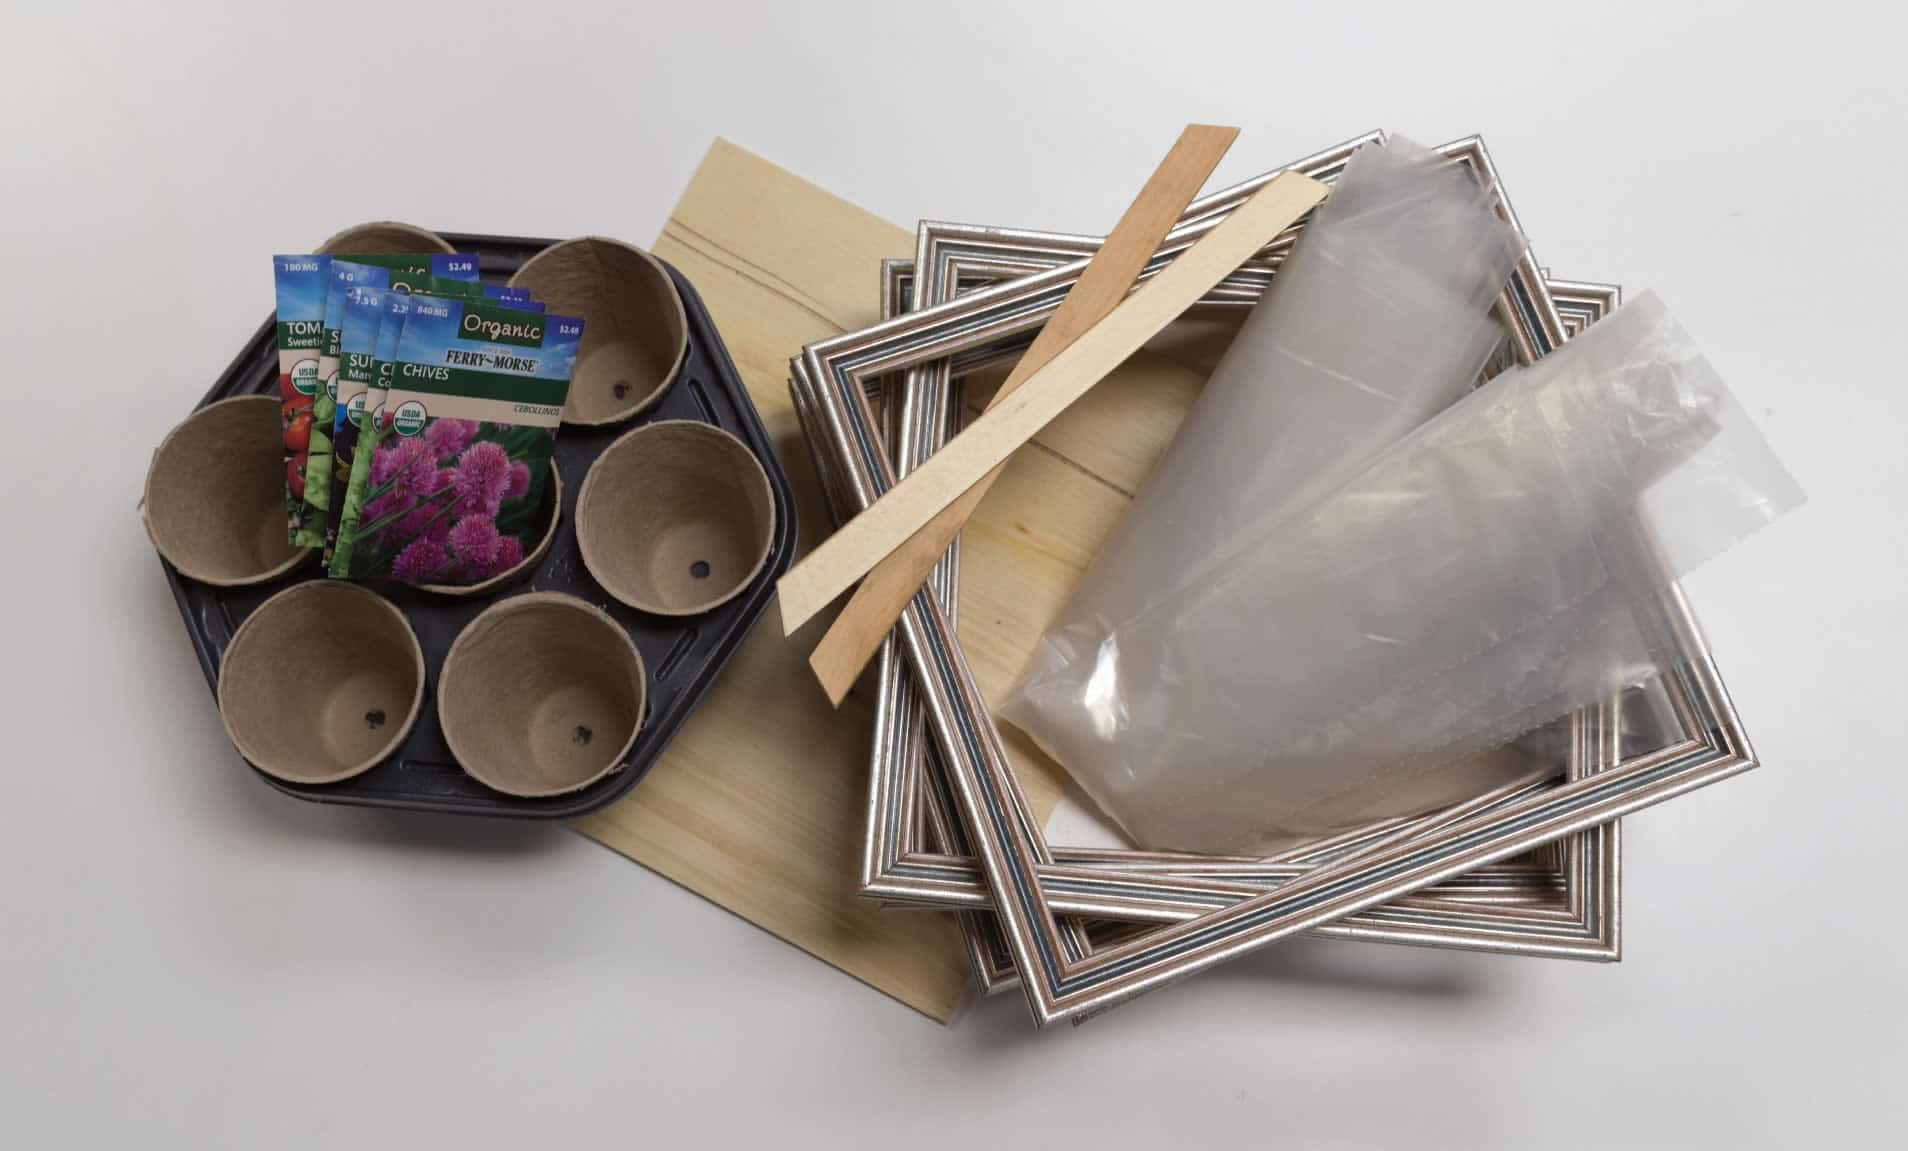 Picture of materials needed to create mini indoor greenhouse project